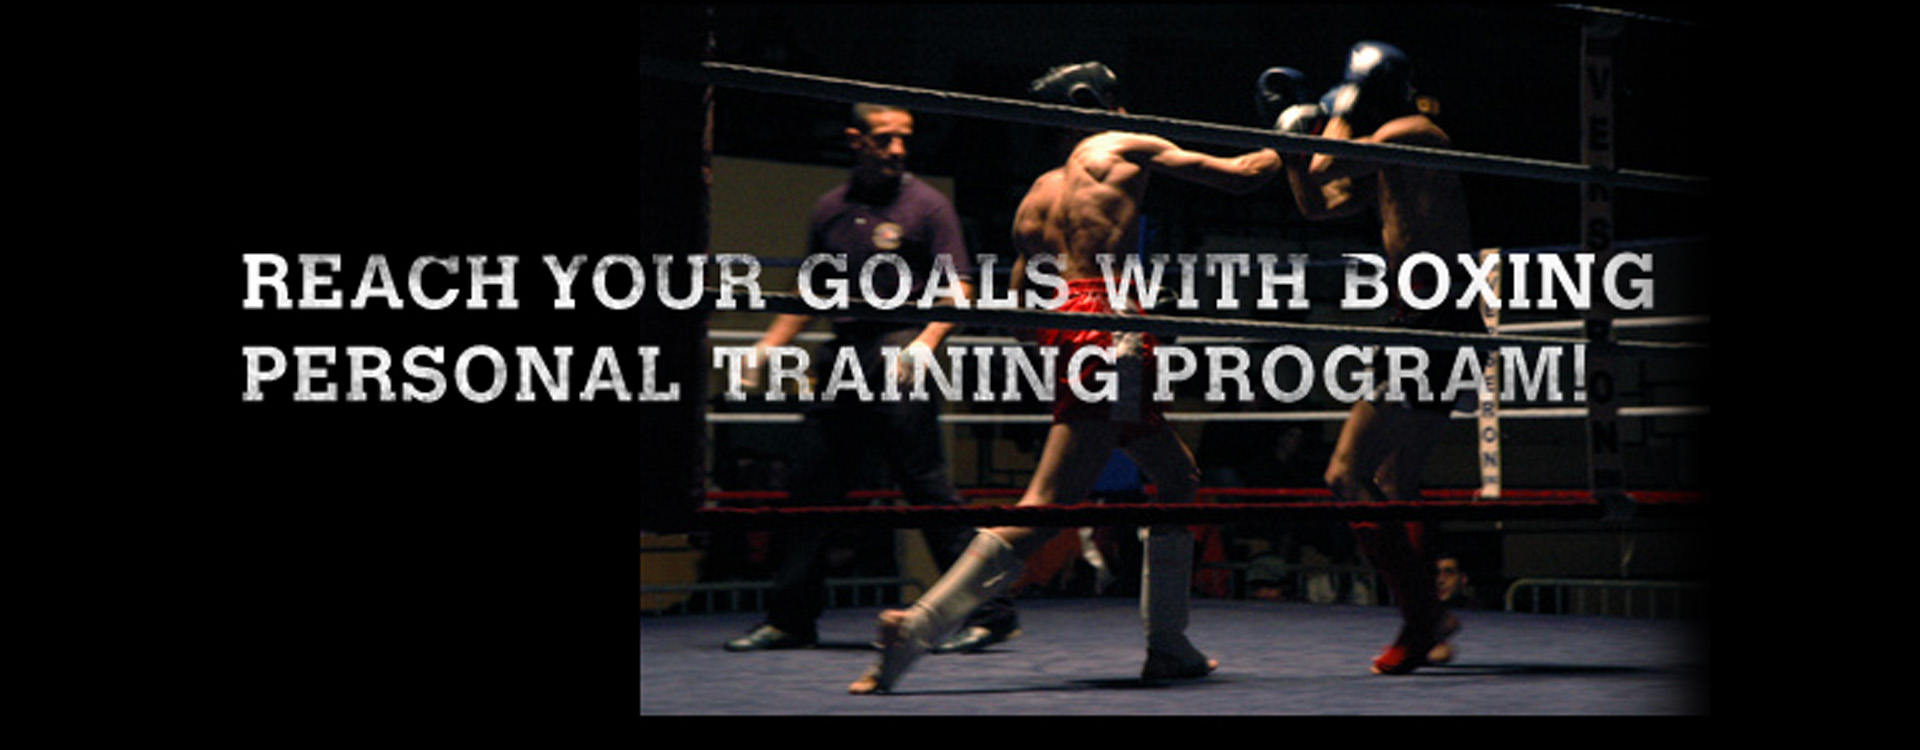 Seb Boxing Boxing Training And Physical Fitness In Los Angeles